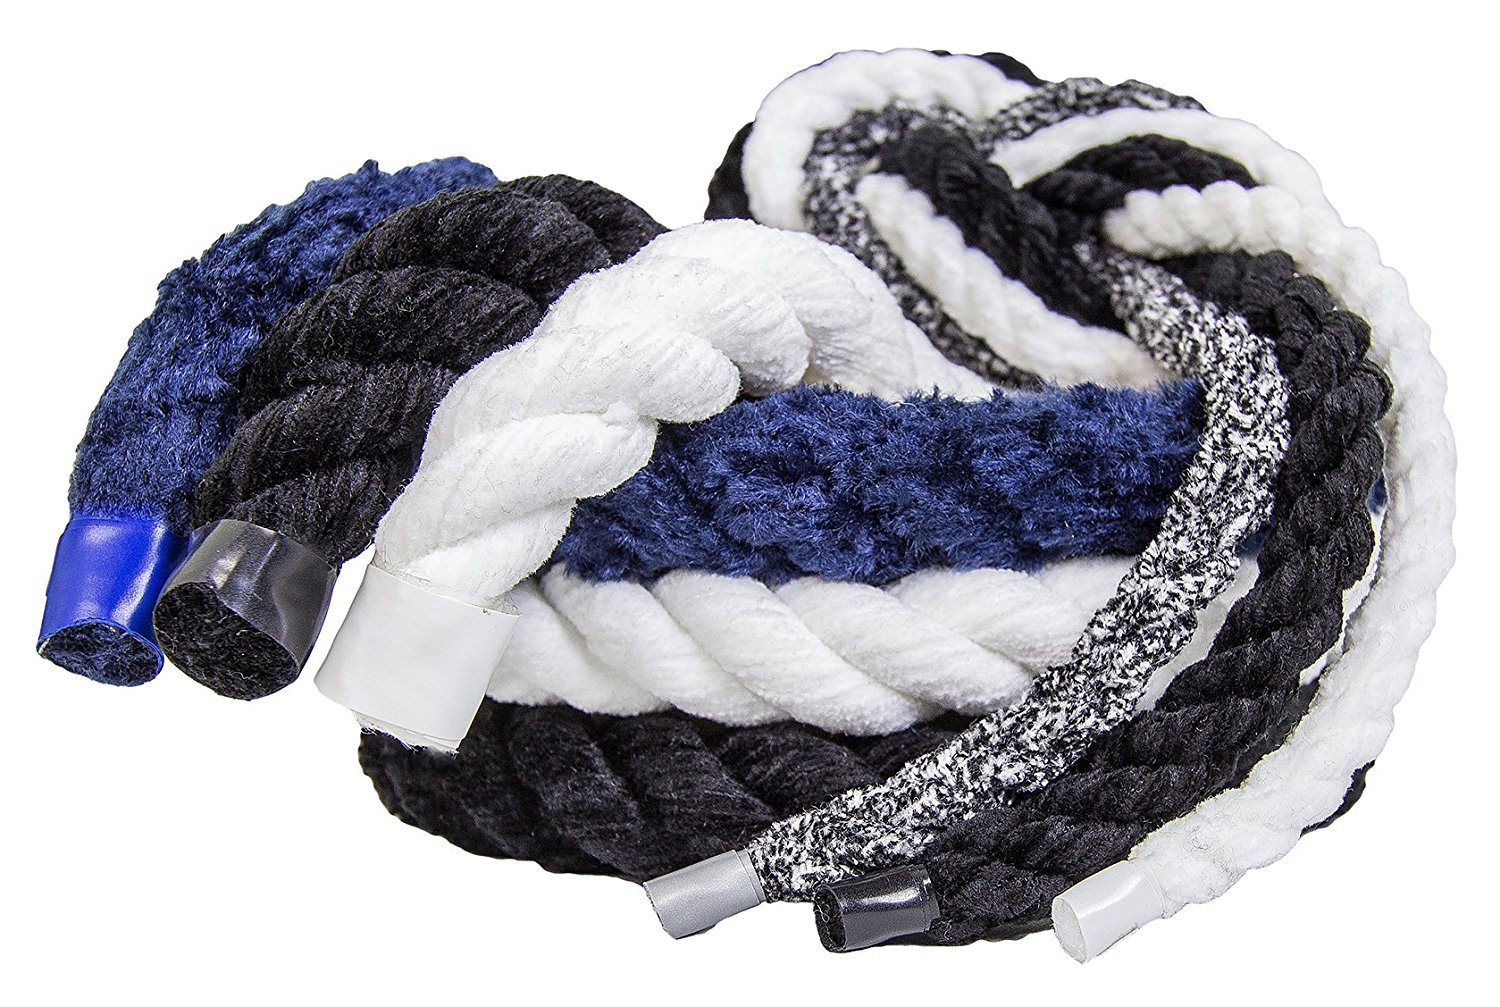 FMS Ultra Soft Triple-Strand 1/4 Inch & 1/2 Inch Twisted Chenille Rope by the Foot, 10 Feet, 25 Feet, 50 Feet, 100 Feet and Full Spools (Navy Blue)(1/2 Inch x 50 Feet)